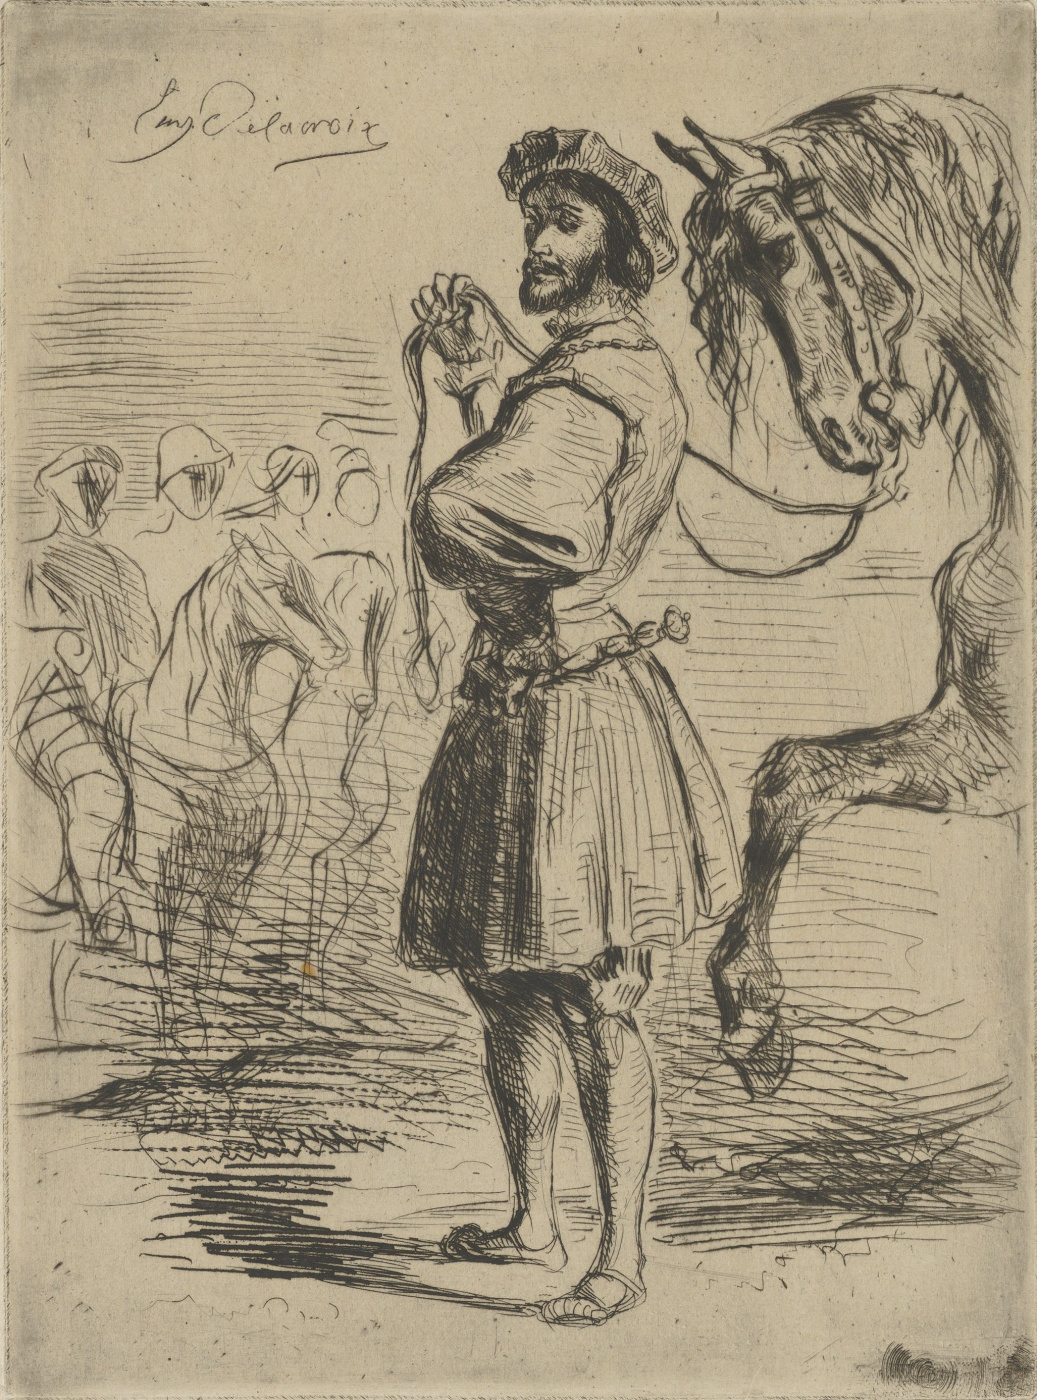 Eugene Delacroix. A nobleman of the time of Francis I